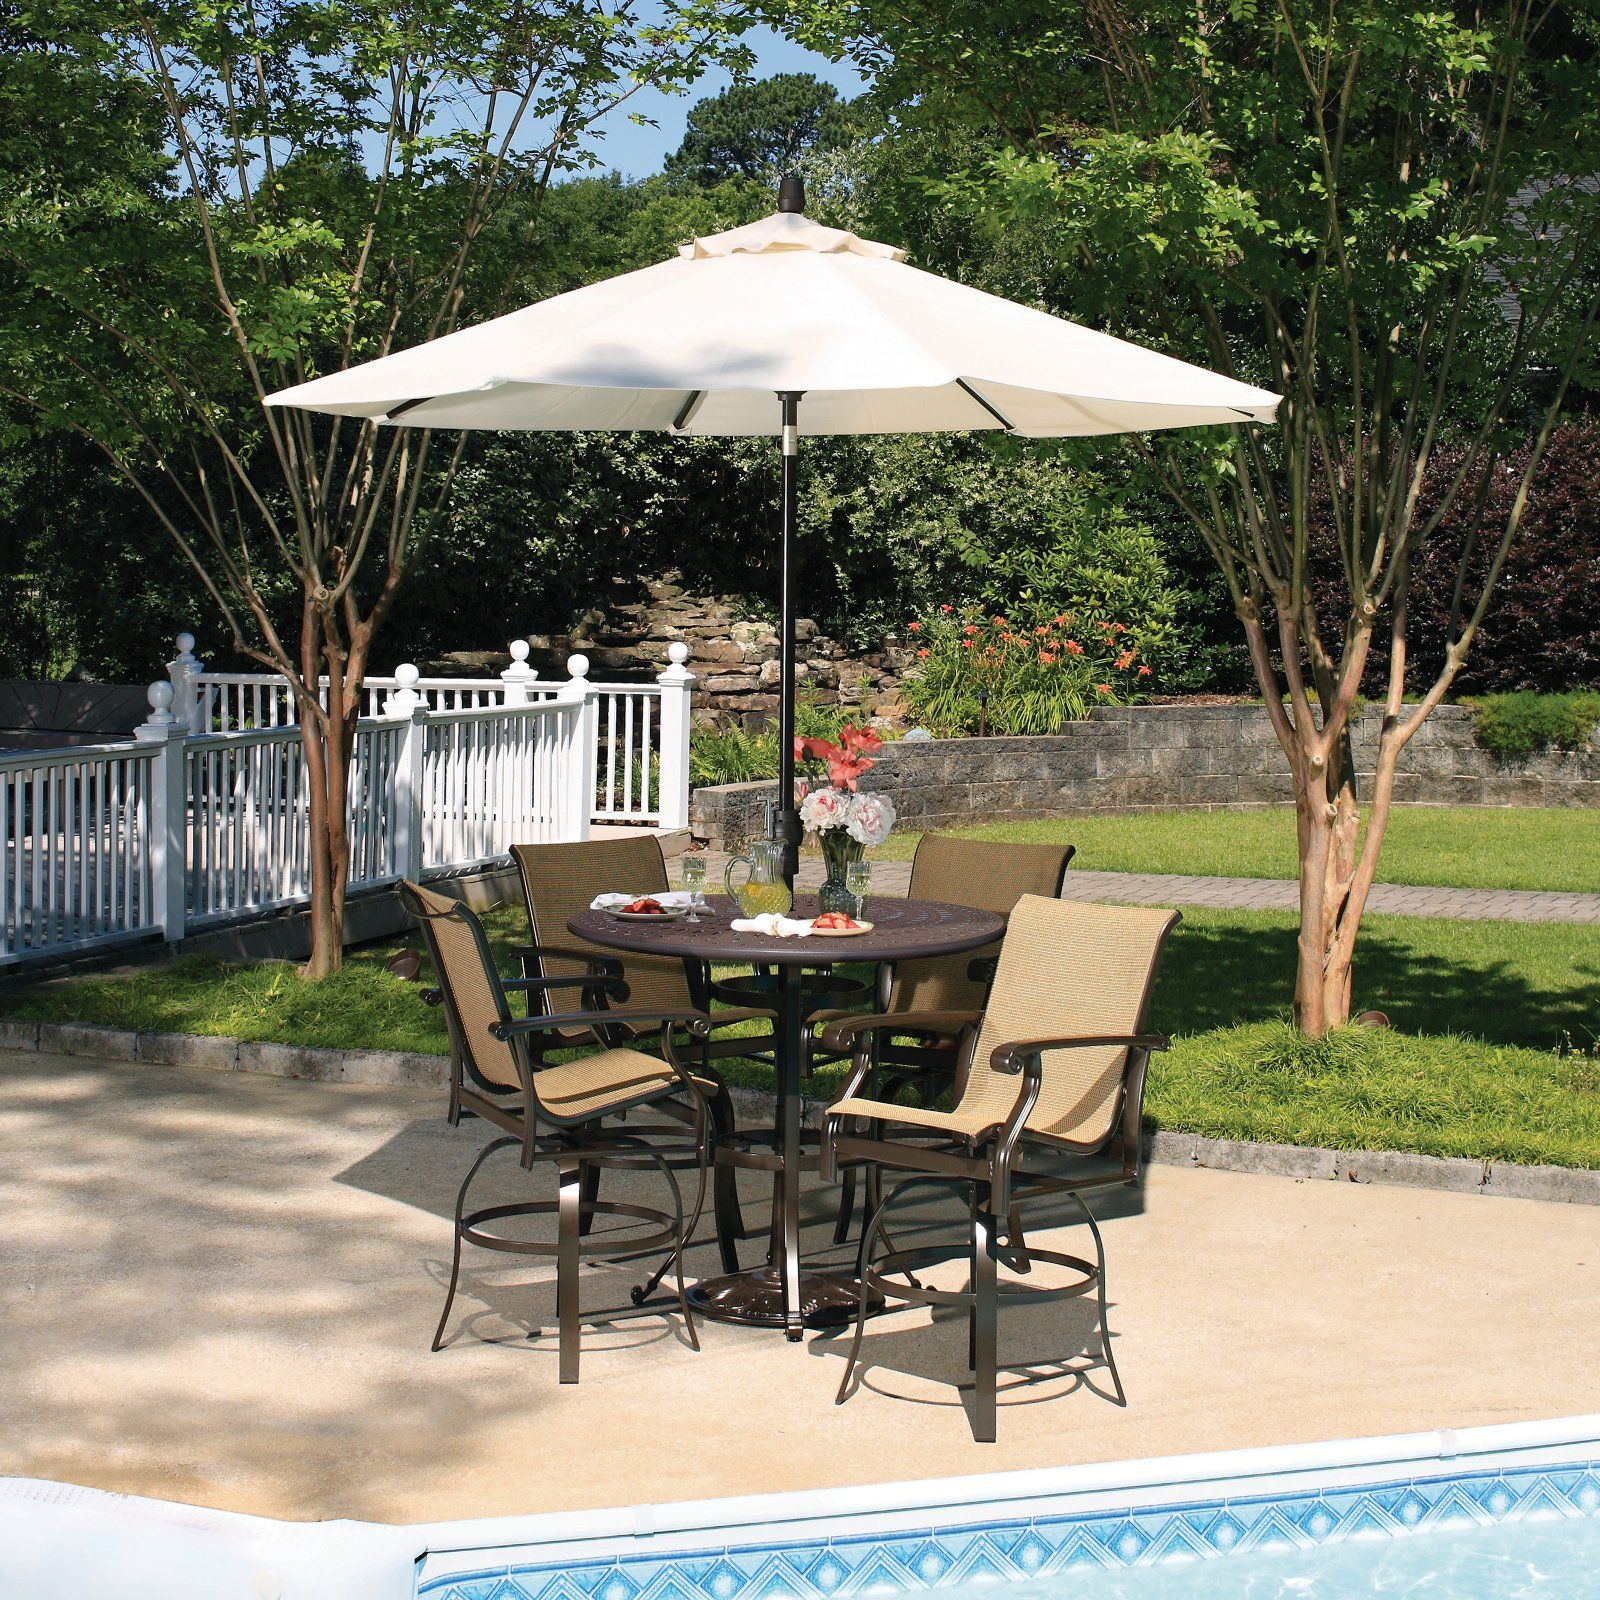 Patio Furniture Sets Bar Height Among White Umbrella Part 49